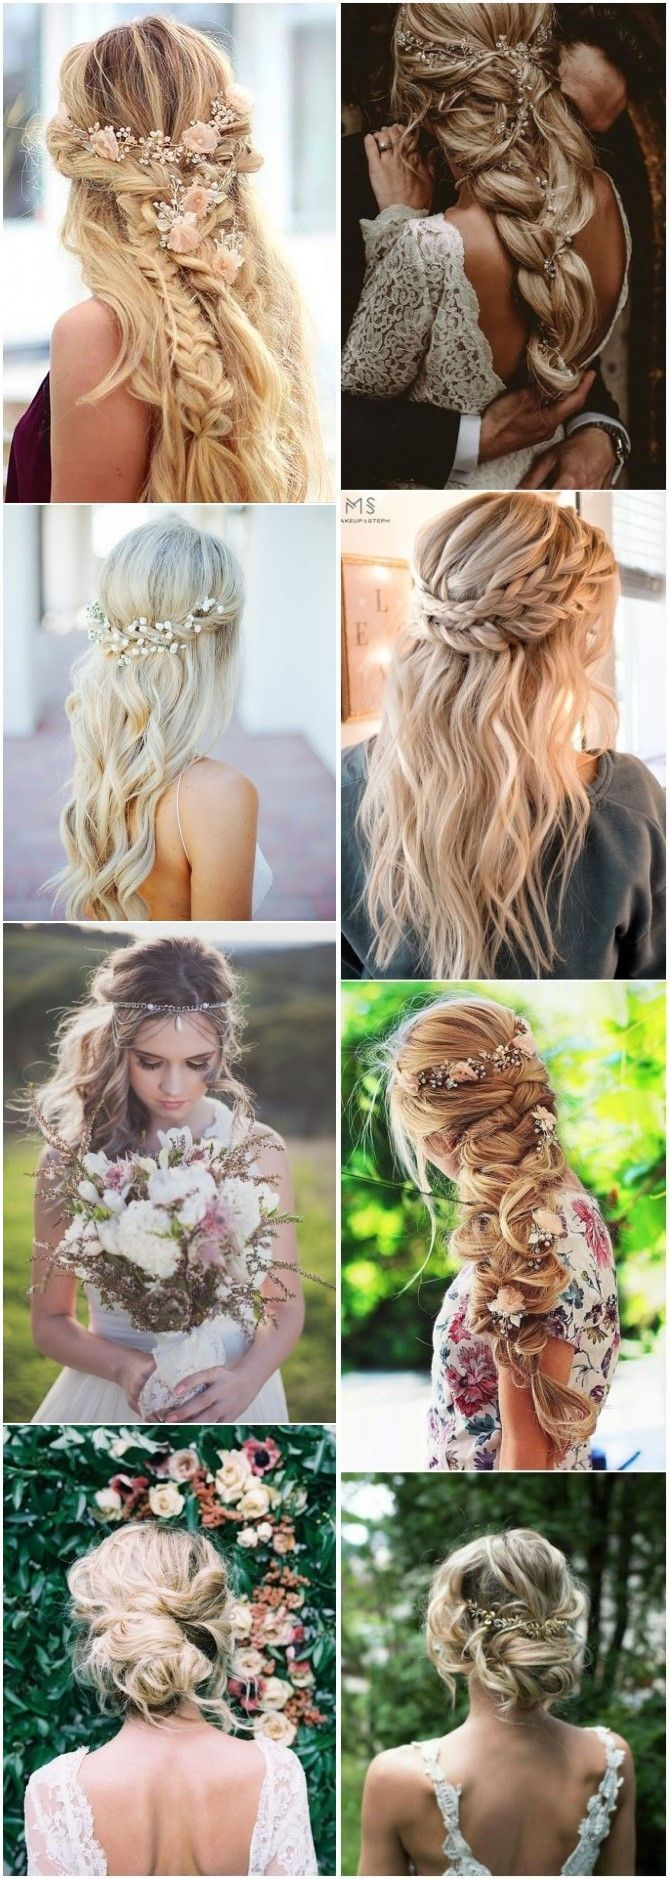 21 BOHO INSPIRED Unique and Creative Wedding Hairstyles #Hairstyles #Mode #We